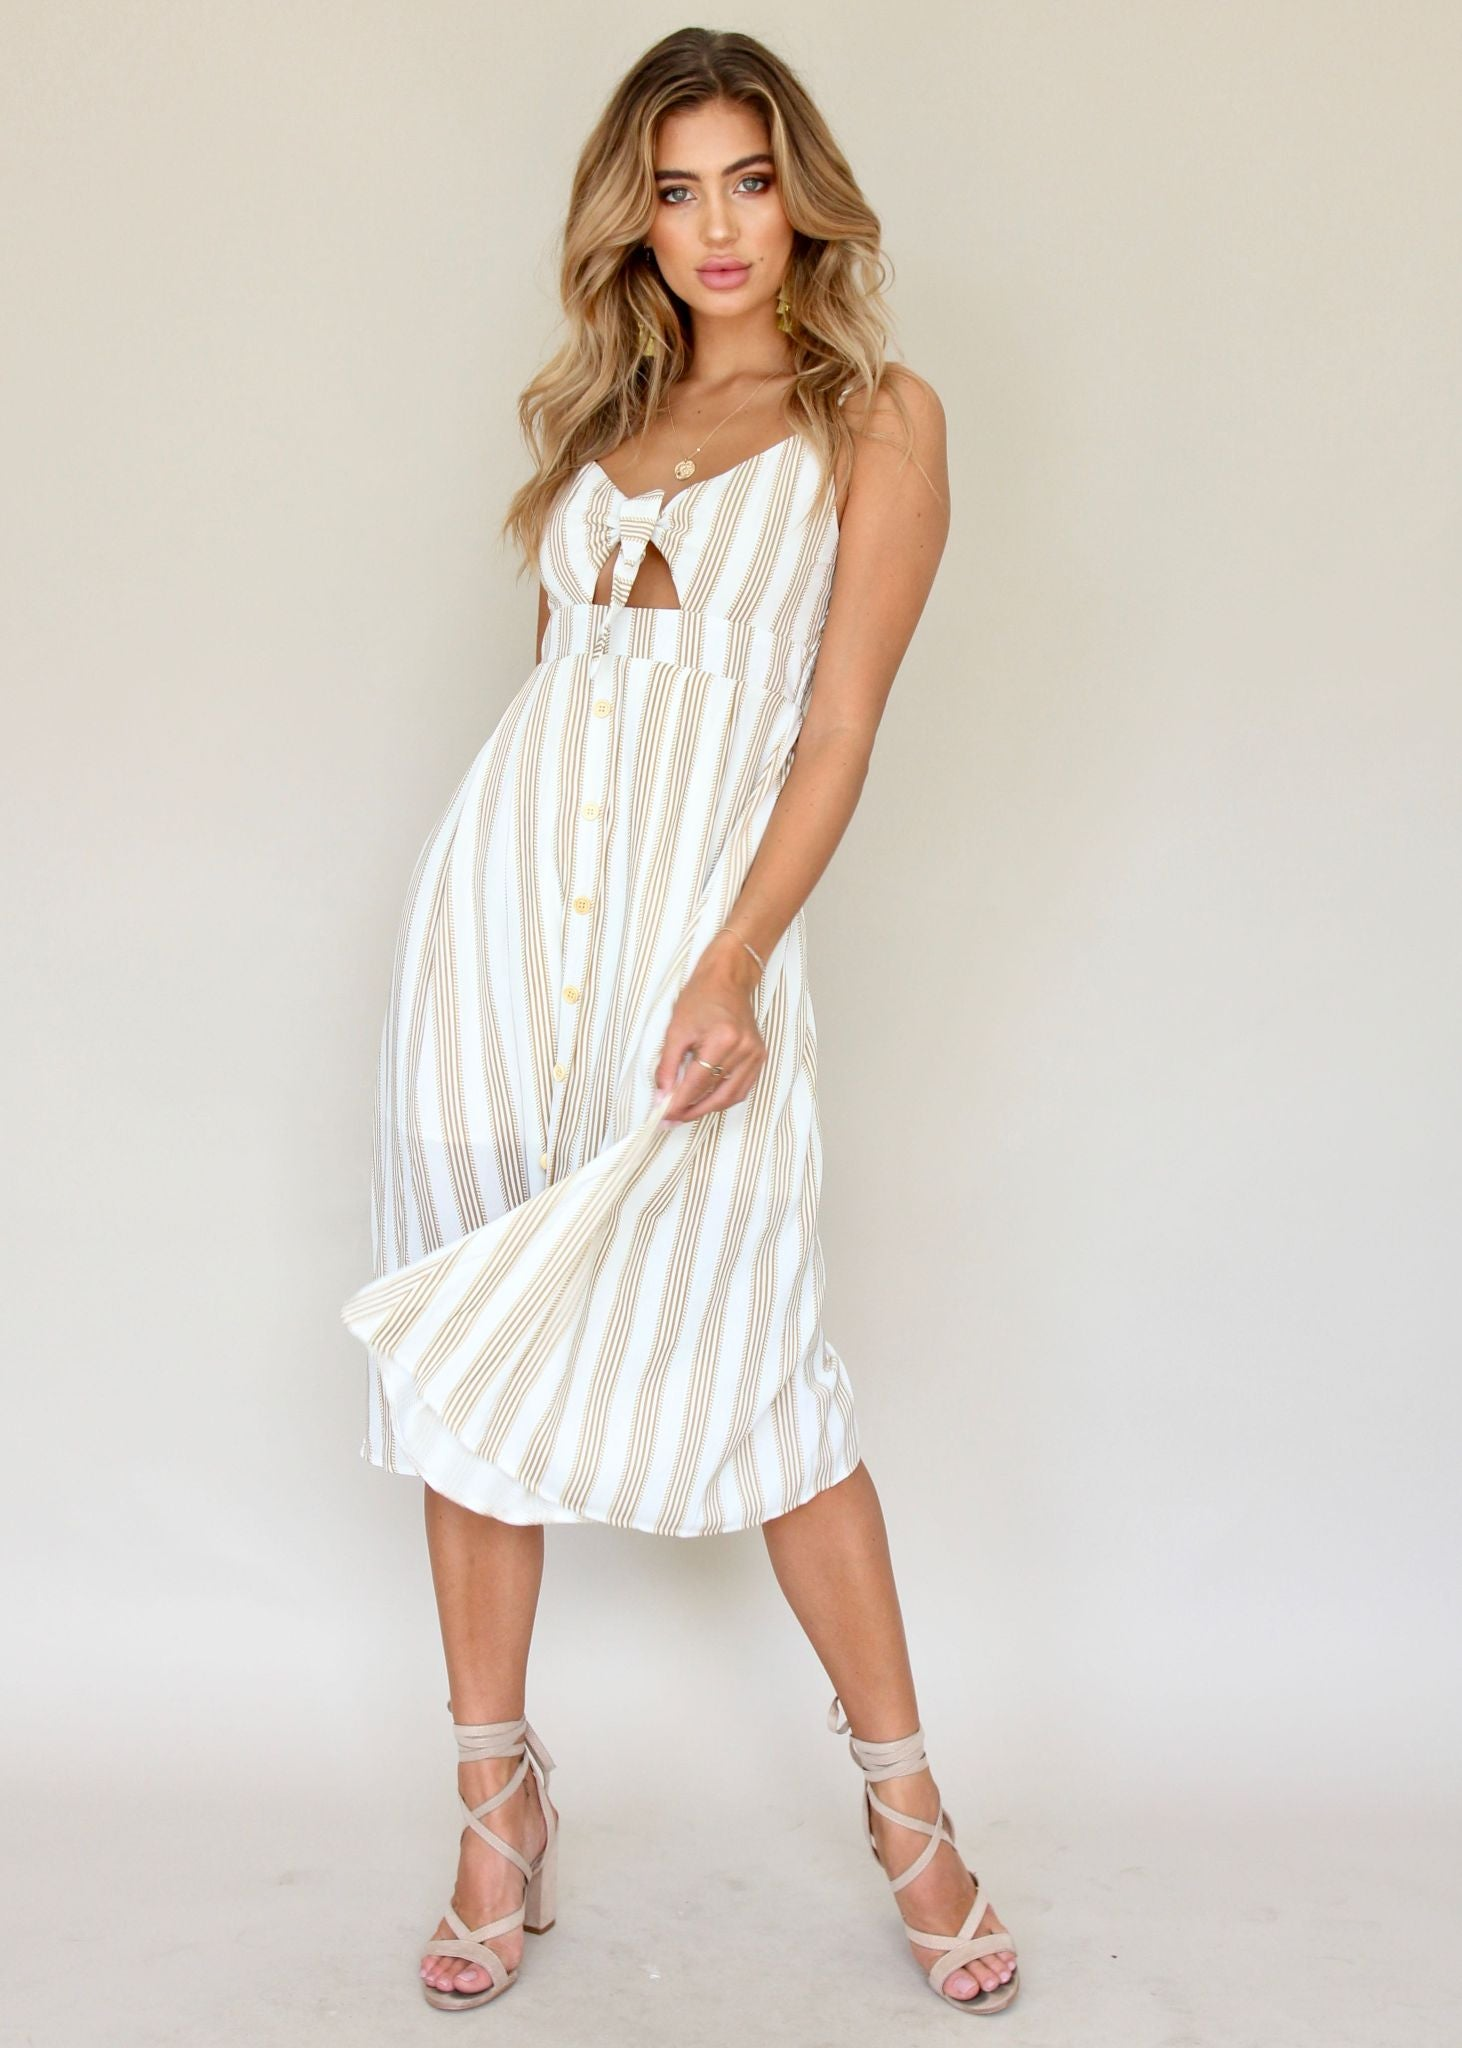 Big City Midi Dress - White/Tan